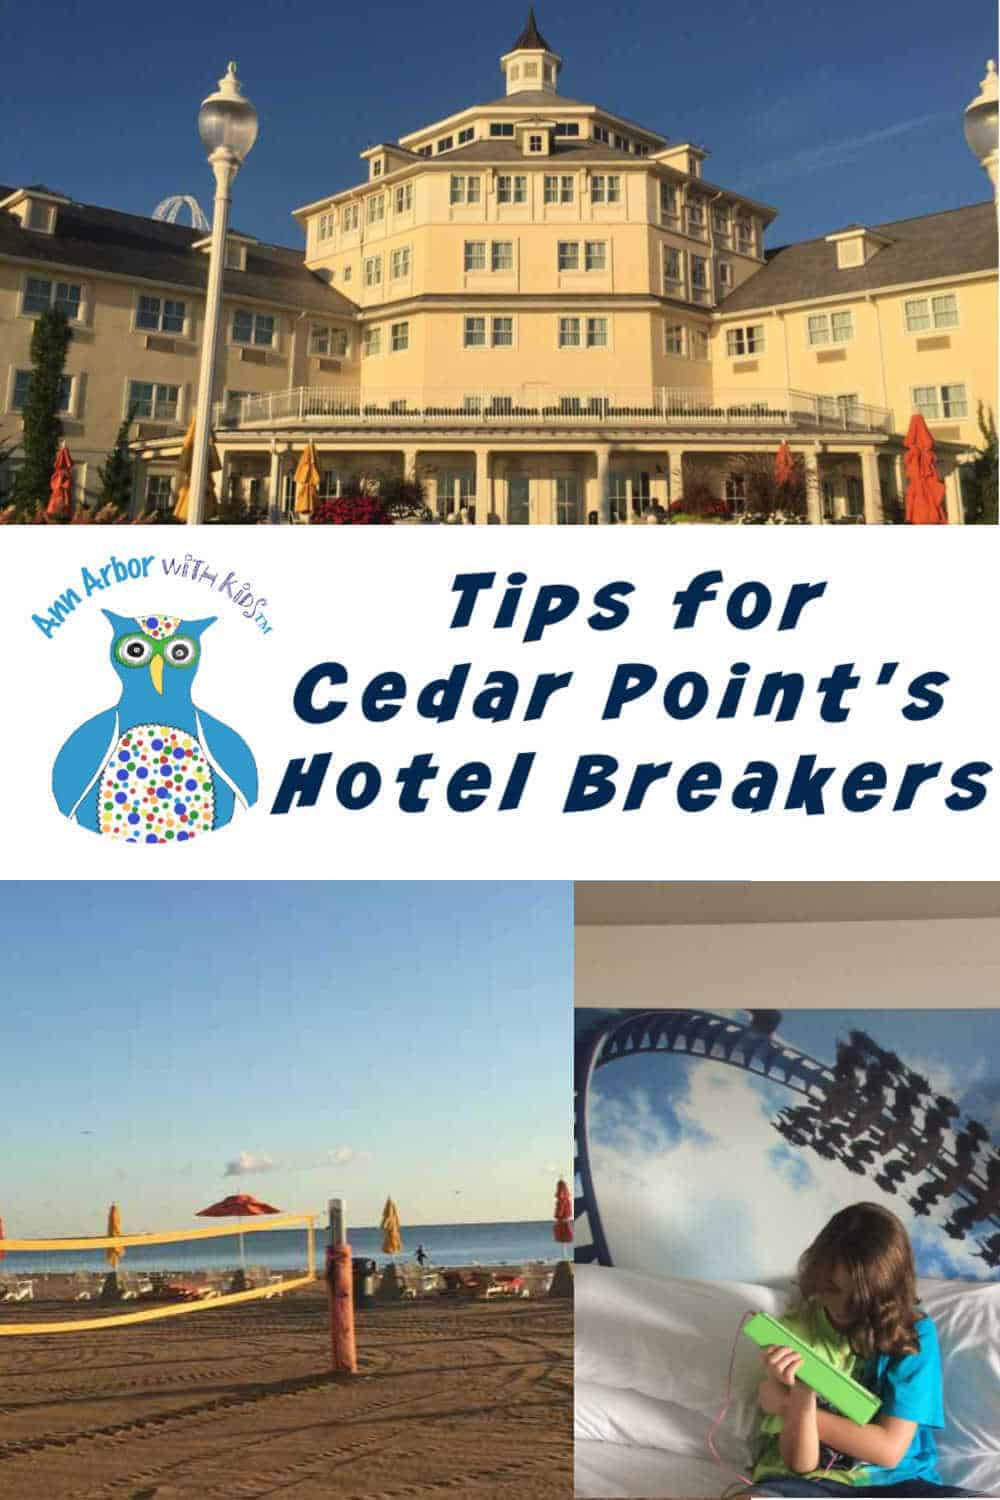 Cedar Point Hotel Breakers Tips - Pinterest Image